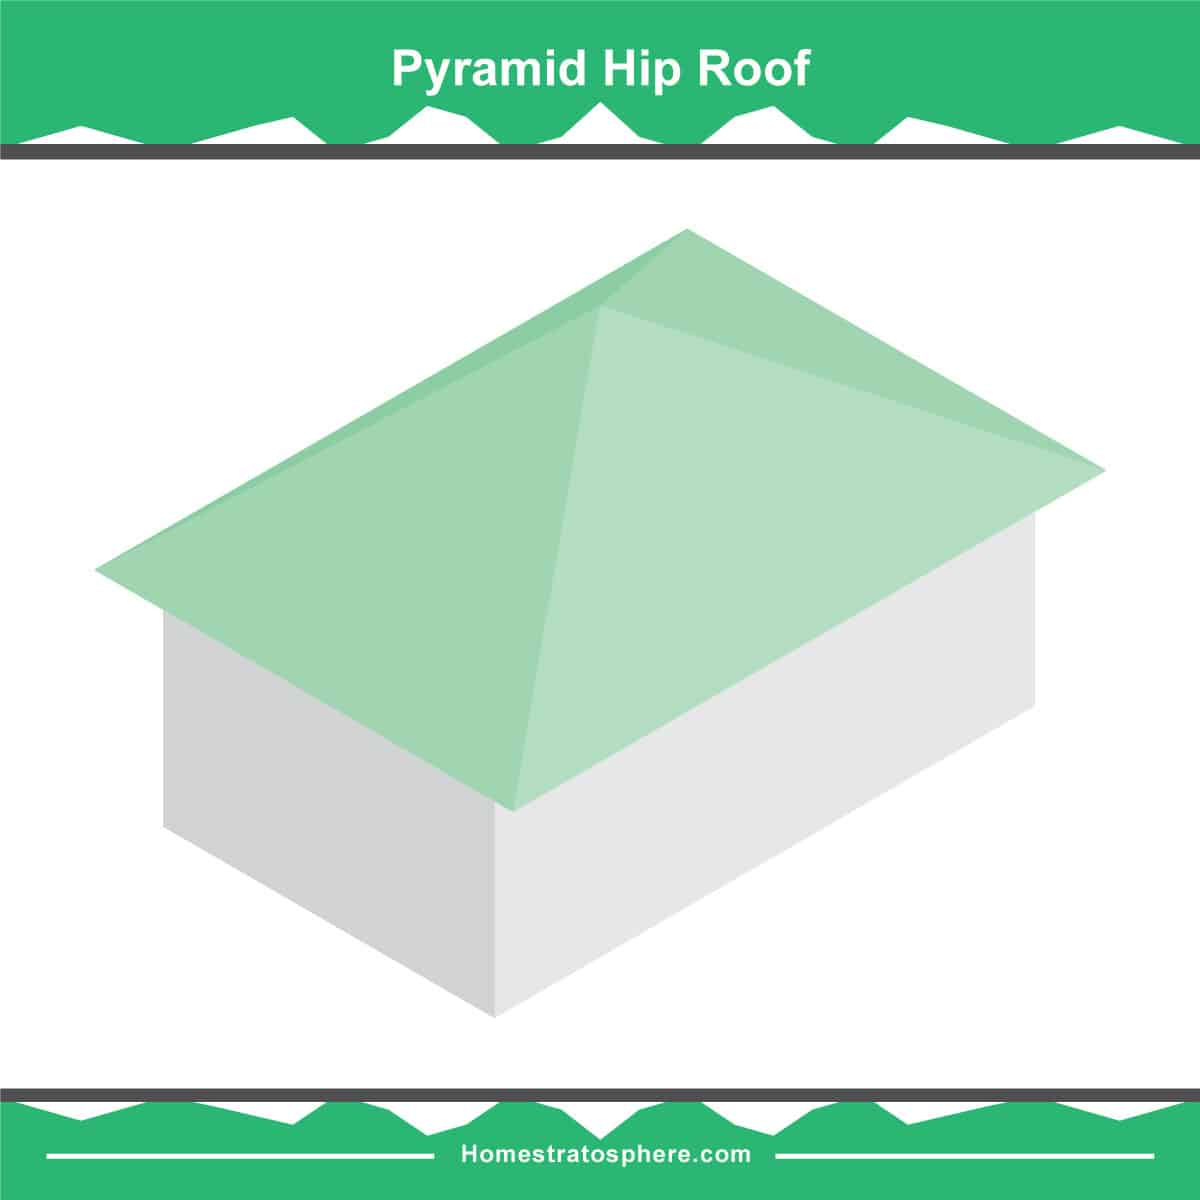 Pyramid hipped roof